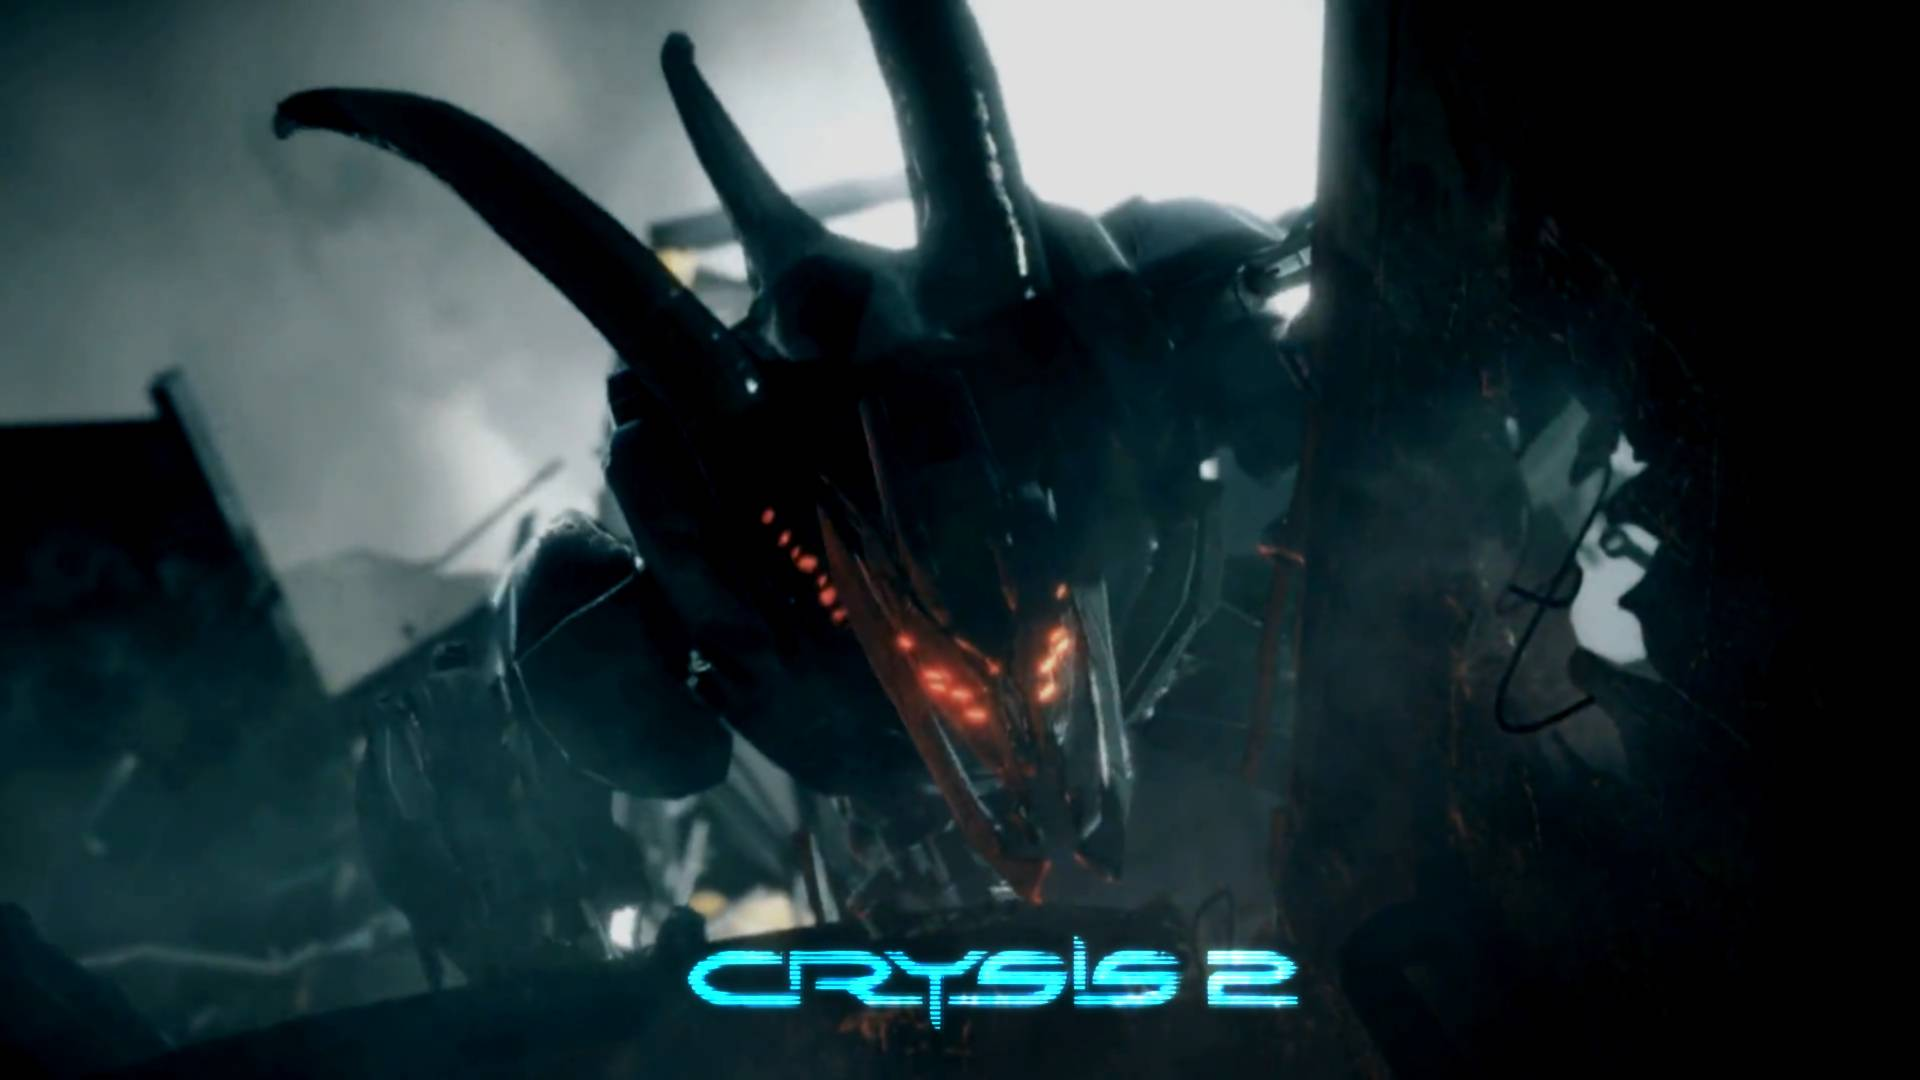 Crysis 3 2013 Game wallpapers (68 Wallpapers)